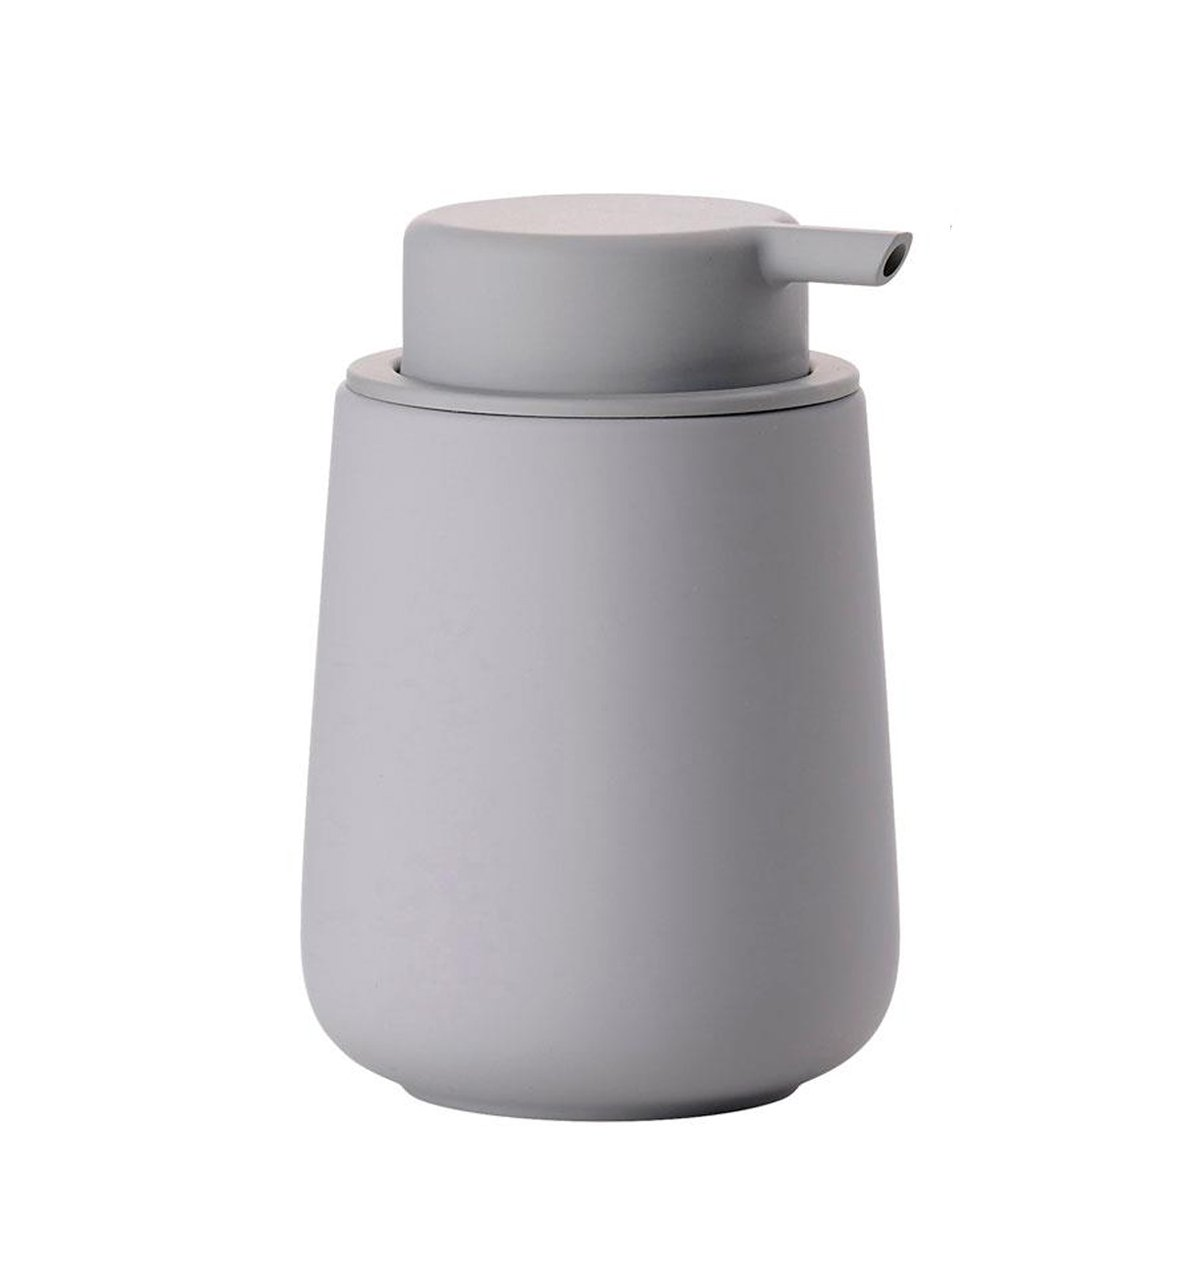 Zone - Nova One Soap Dispenzer - Gull Grey (331217)